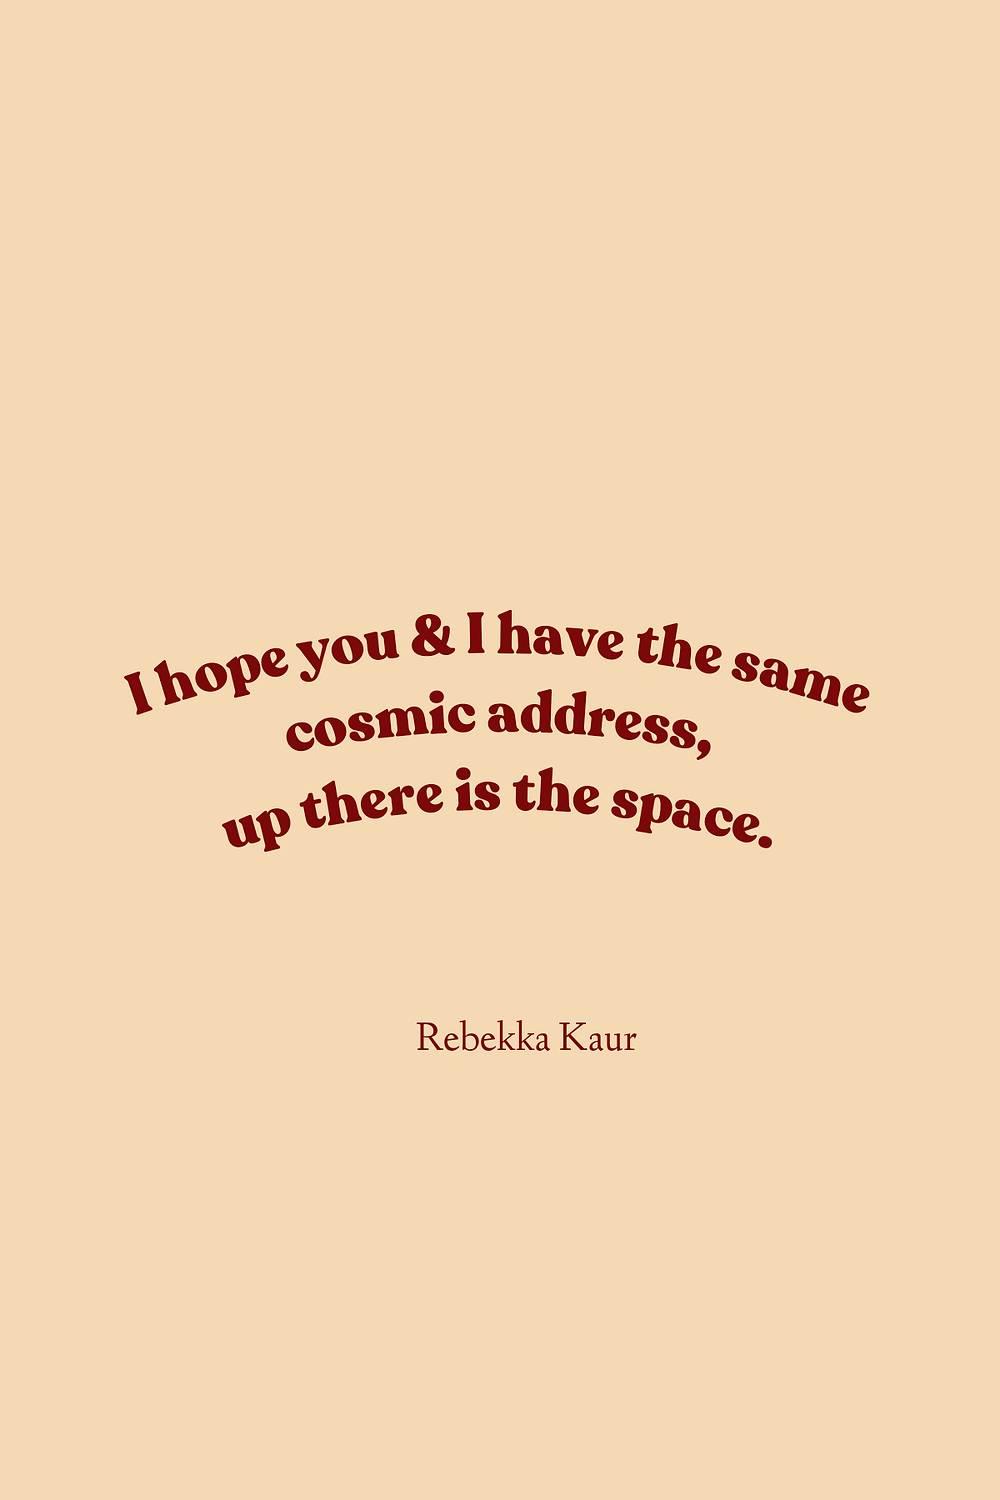 quotes about cosmos and stars